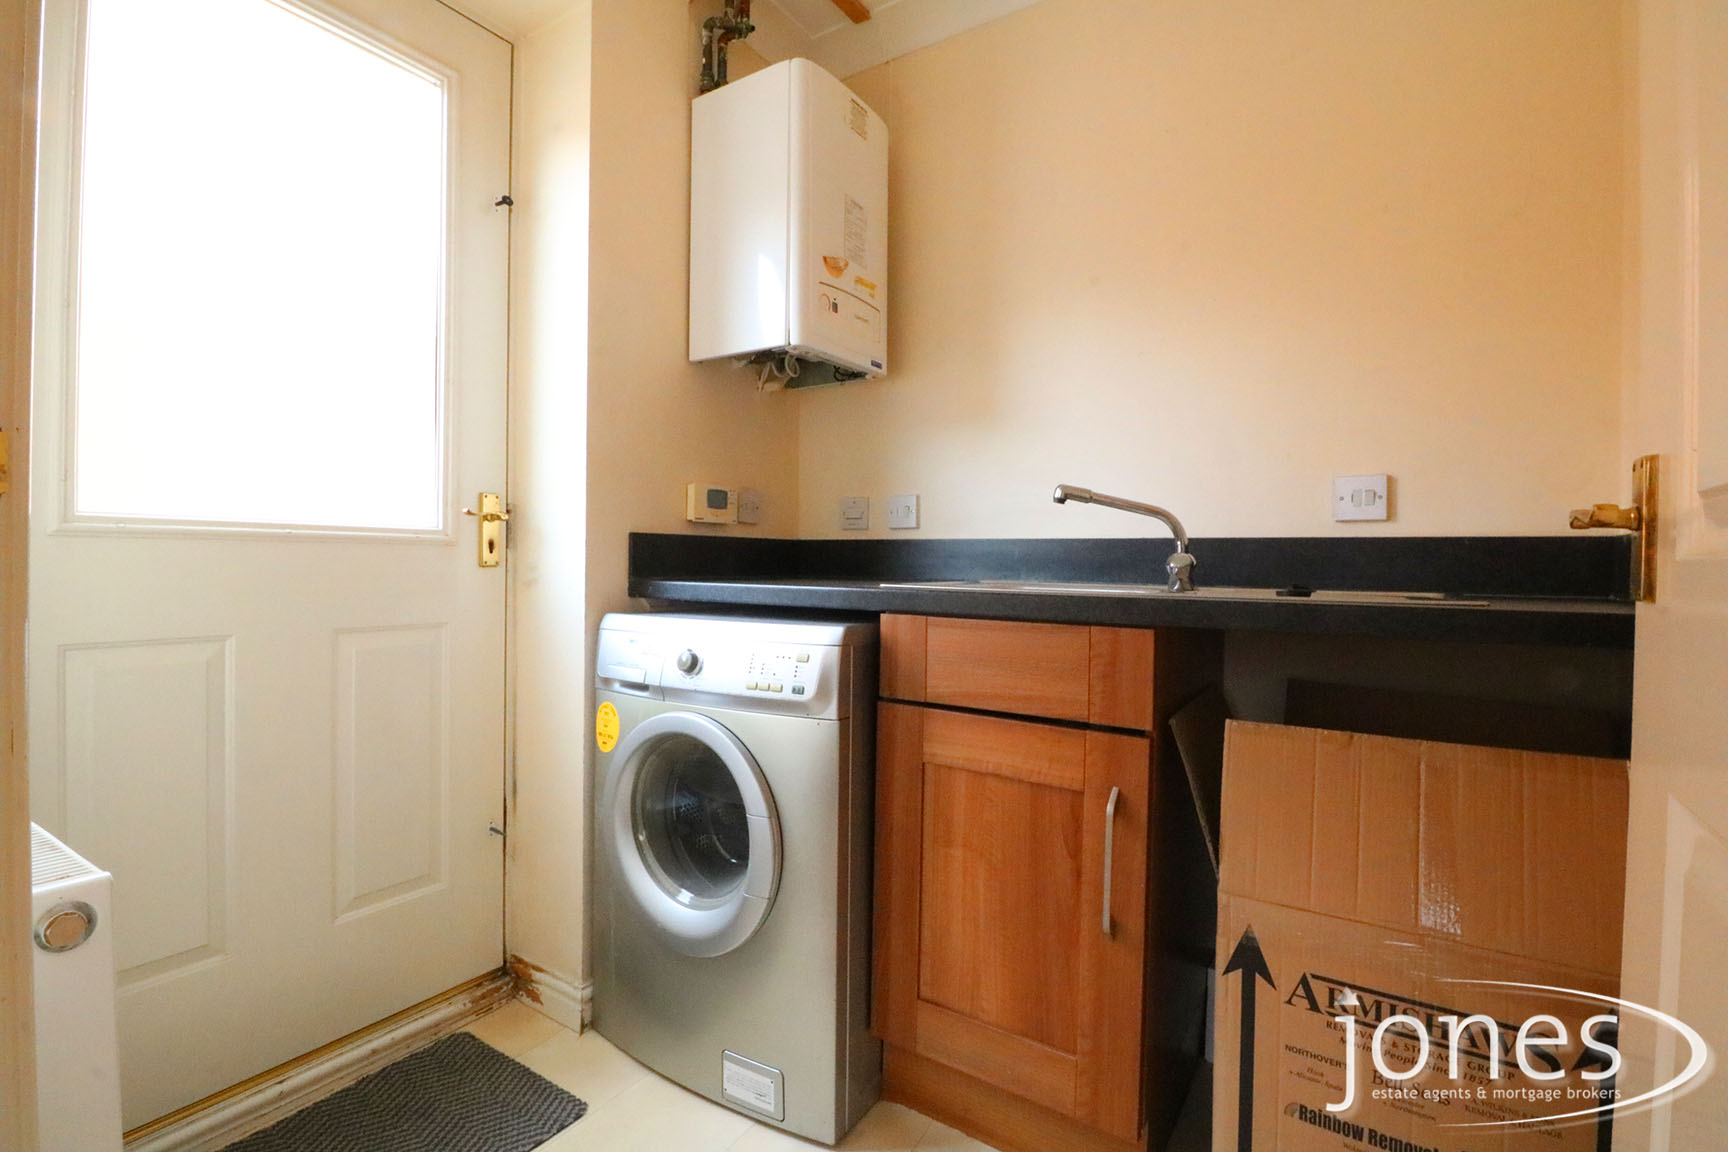 Home for Sale Let - Photo 05 Timothy Court, Stockton on Tees, TS18 3AU